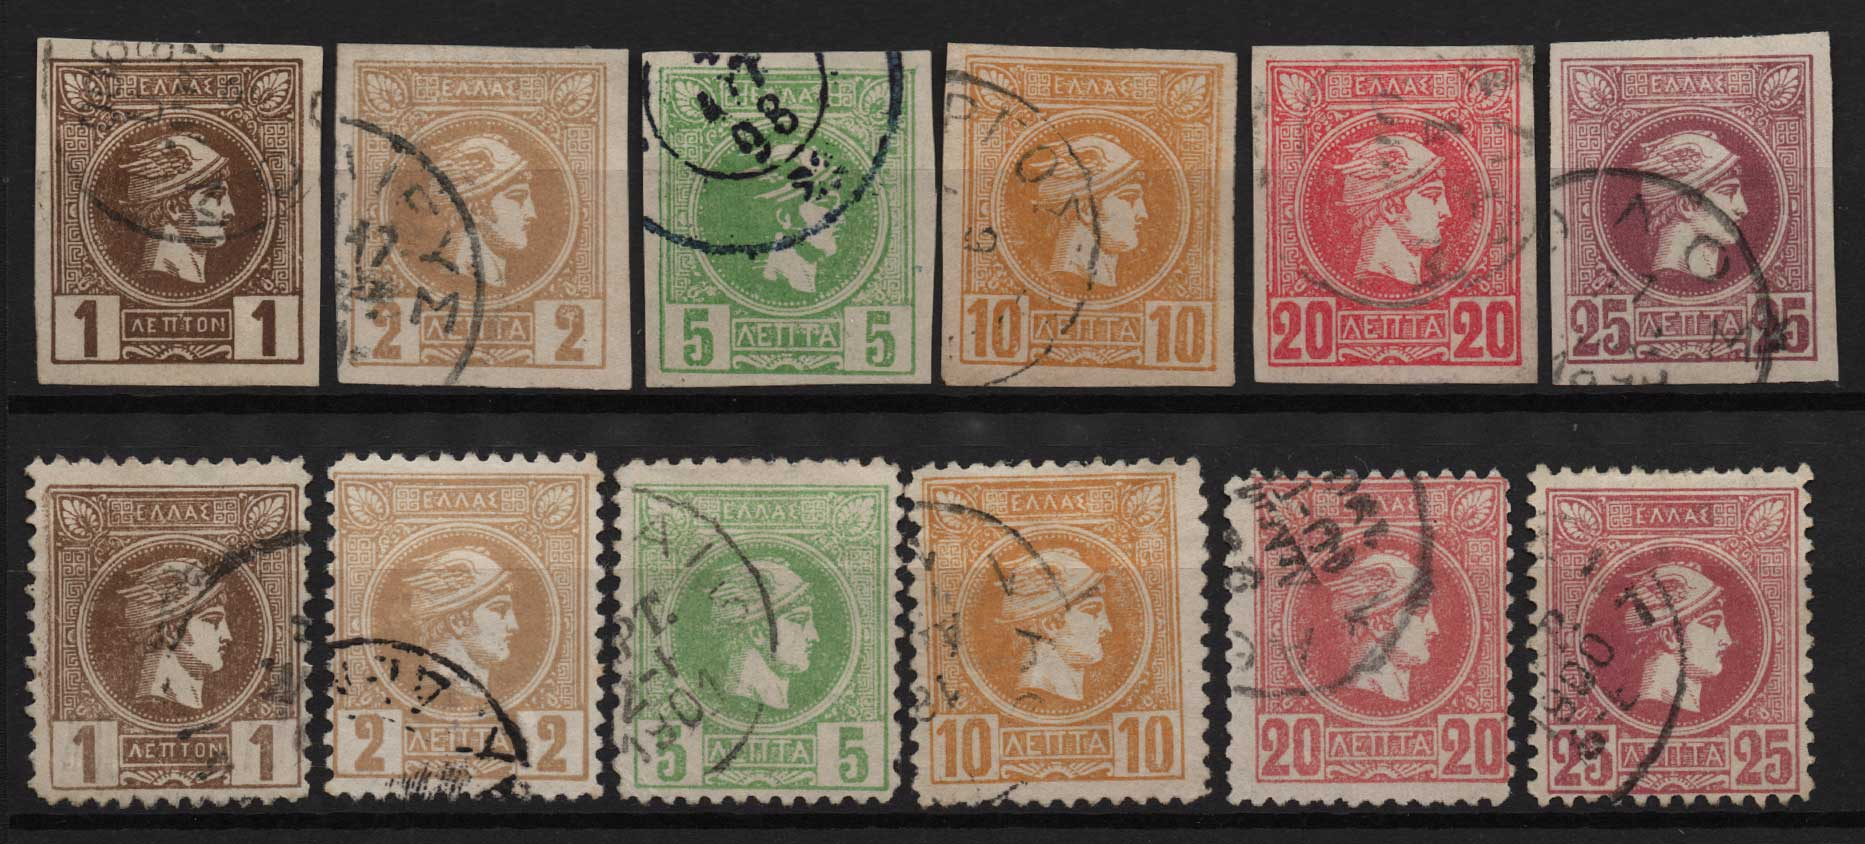 Lot 410 - -  SMALL HERMES HEAD ATHENSPRINTING - 3rd PERIOD -  Athens Auctions Public Auction 74 General Stamp Sale